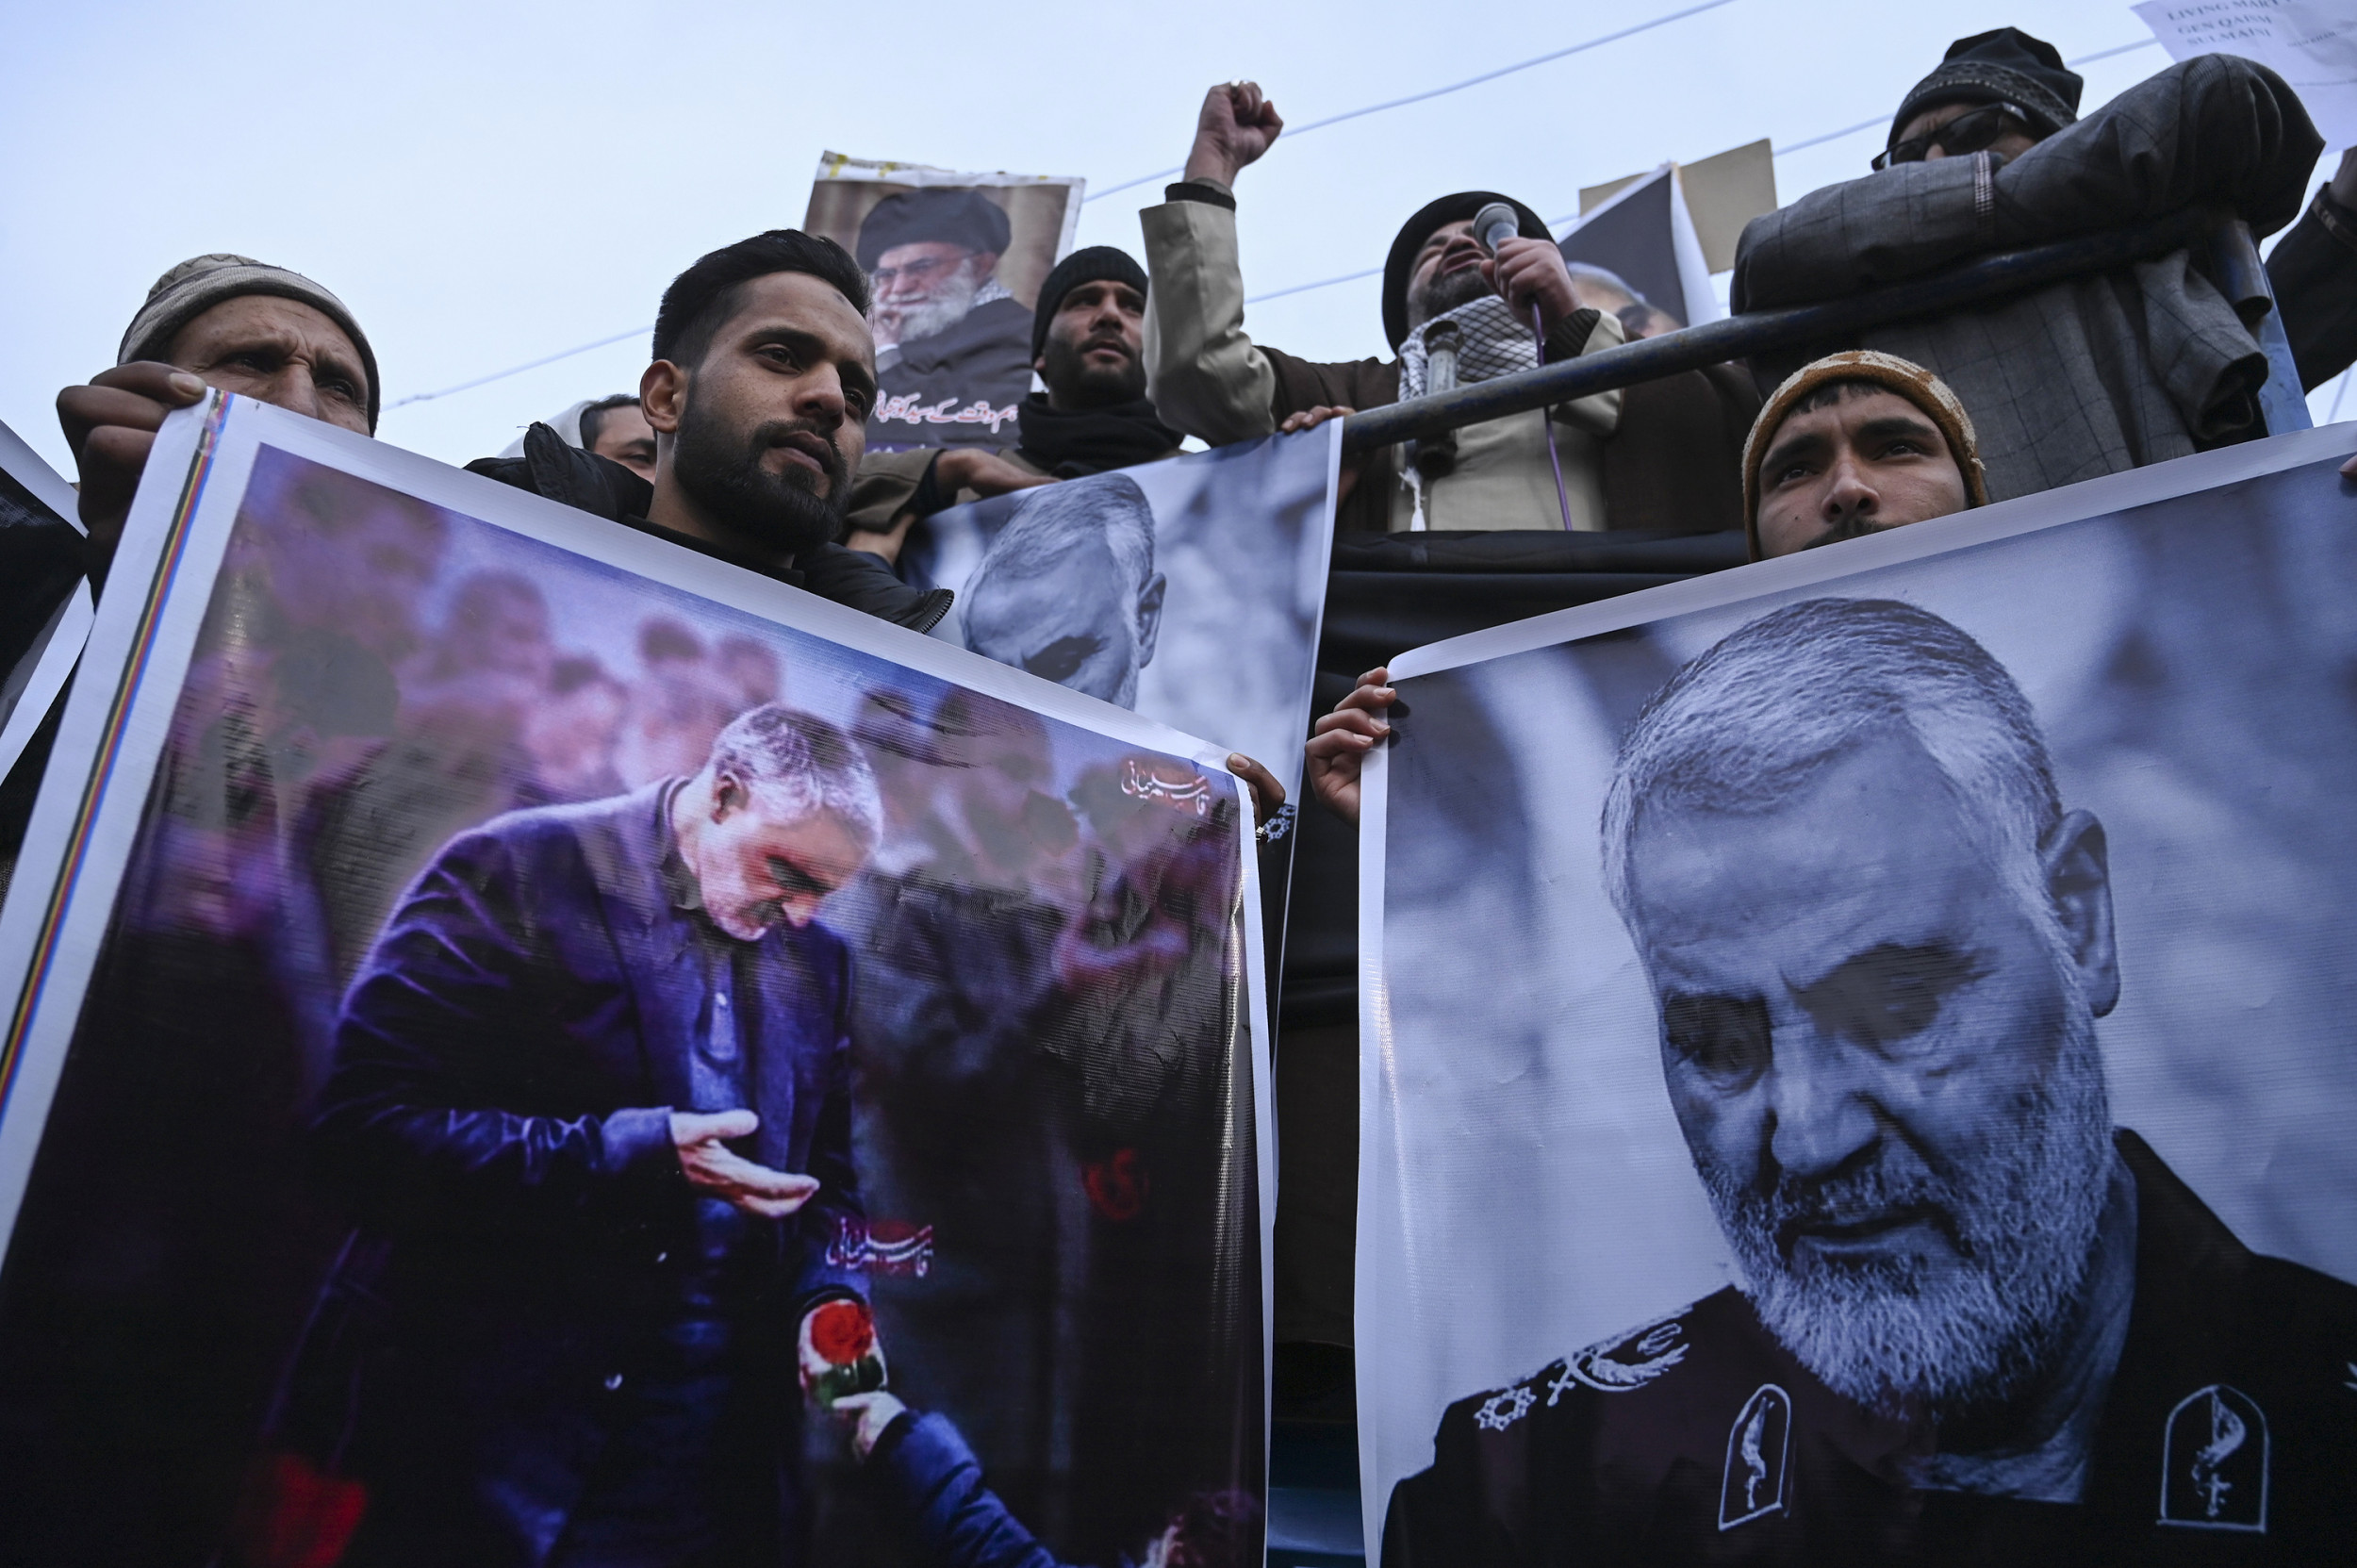 Who will replace Qassem Soleimani? Esmail Ghaani appointed hours after U.S. drone strike